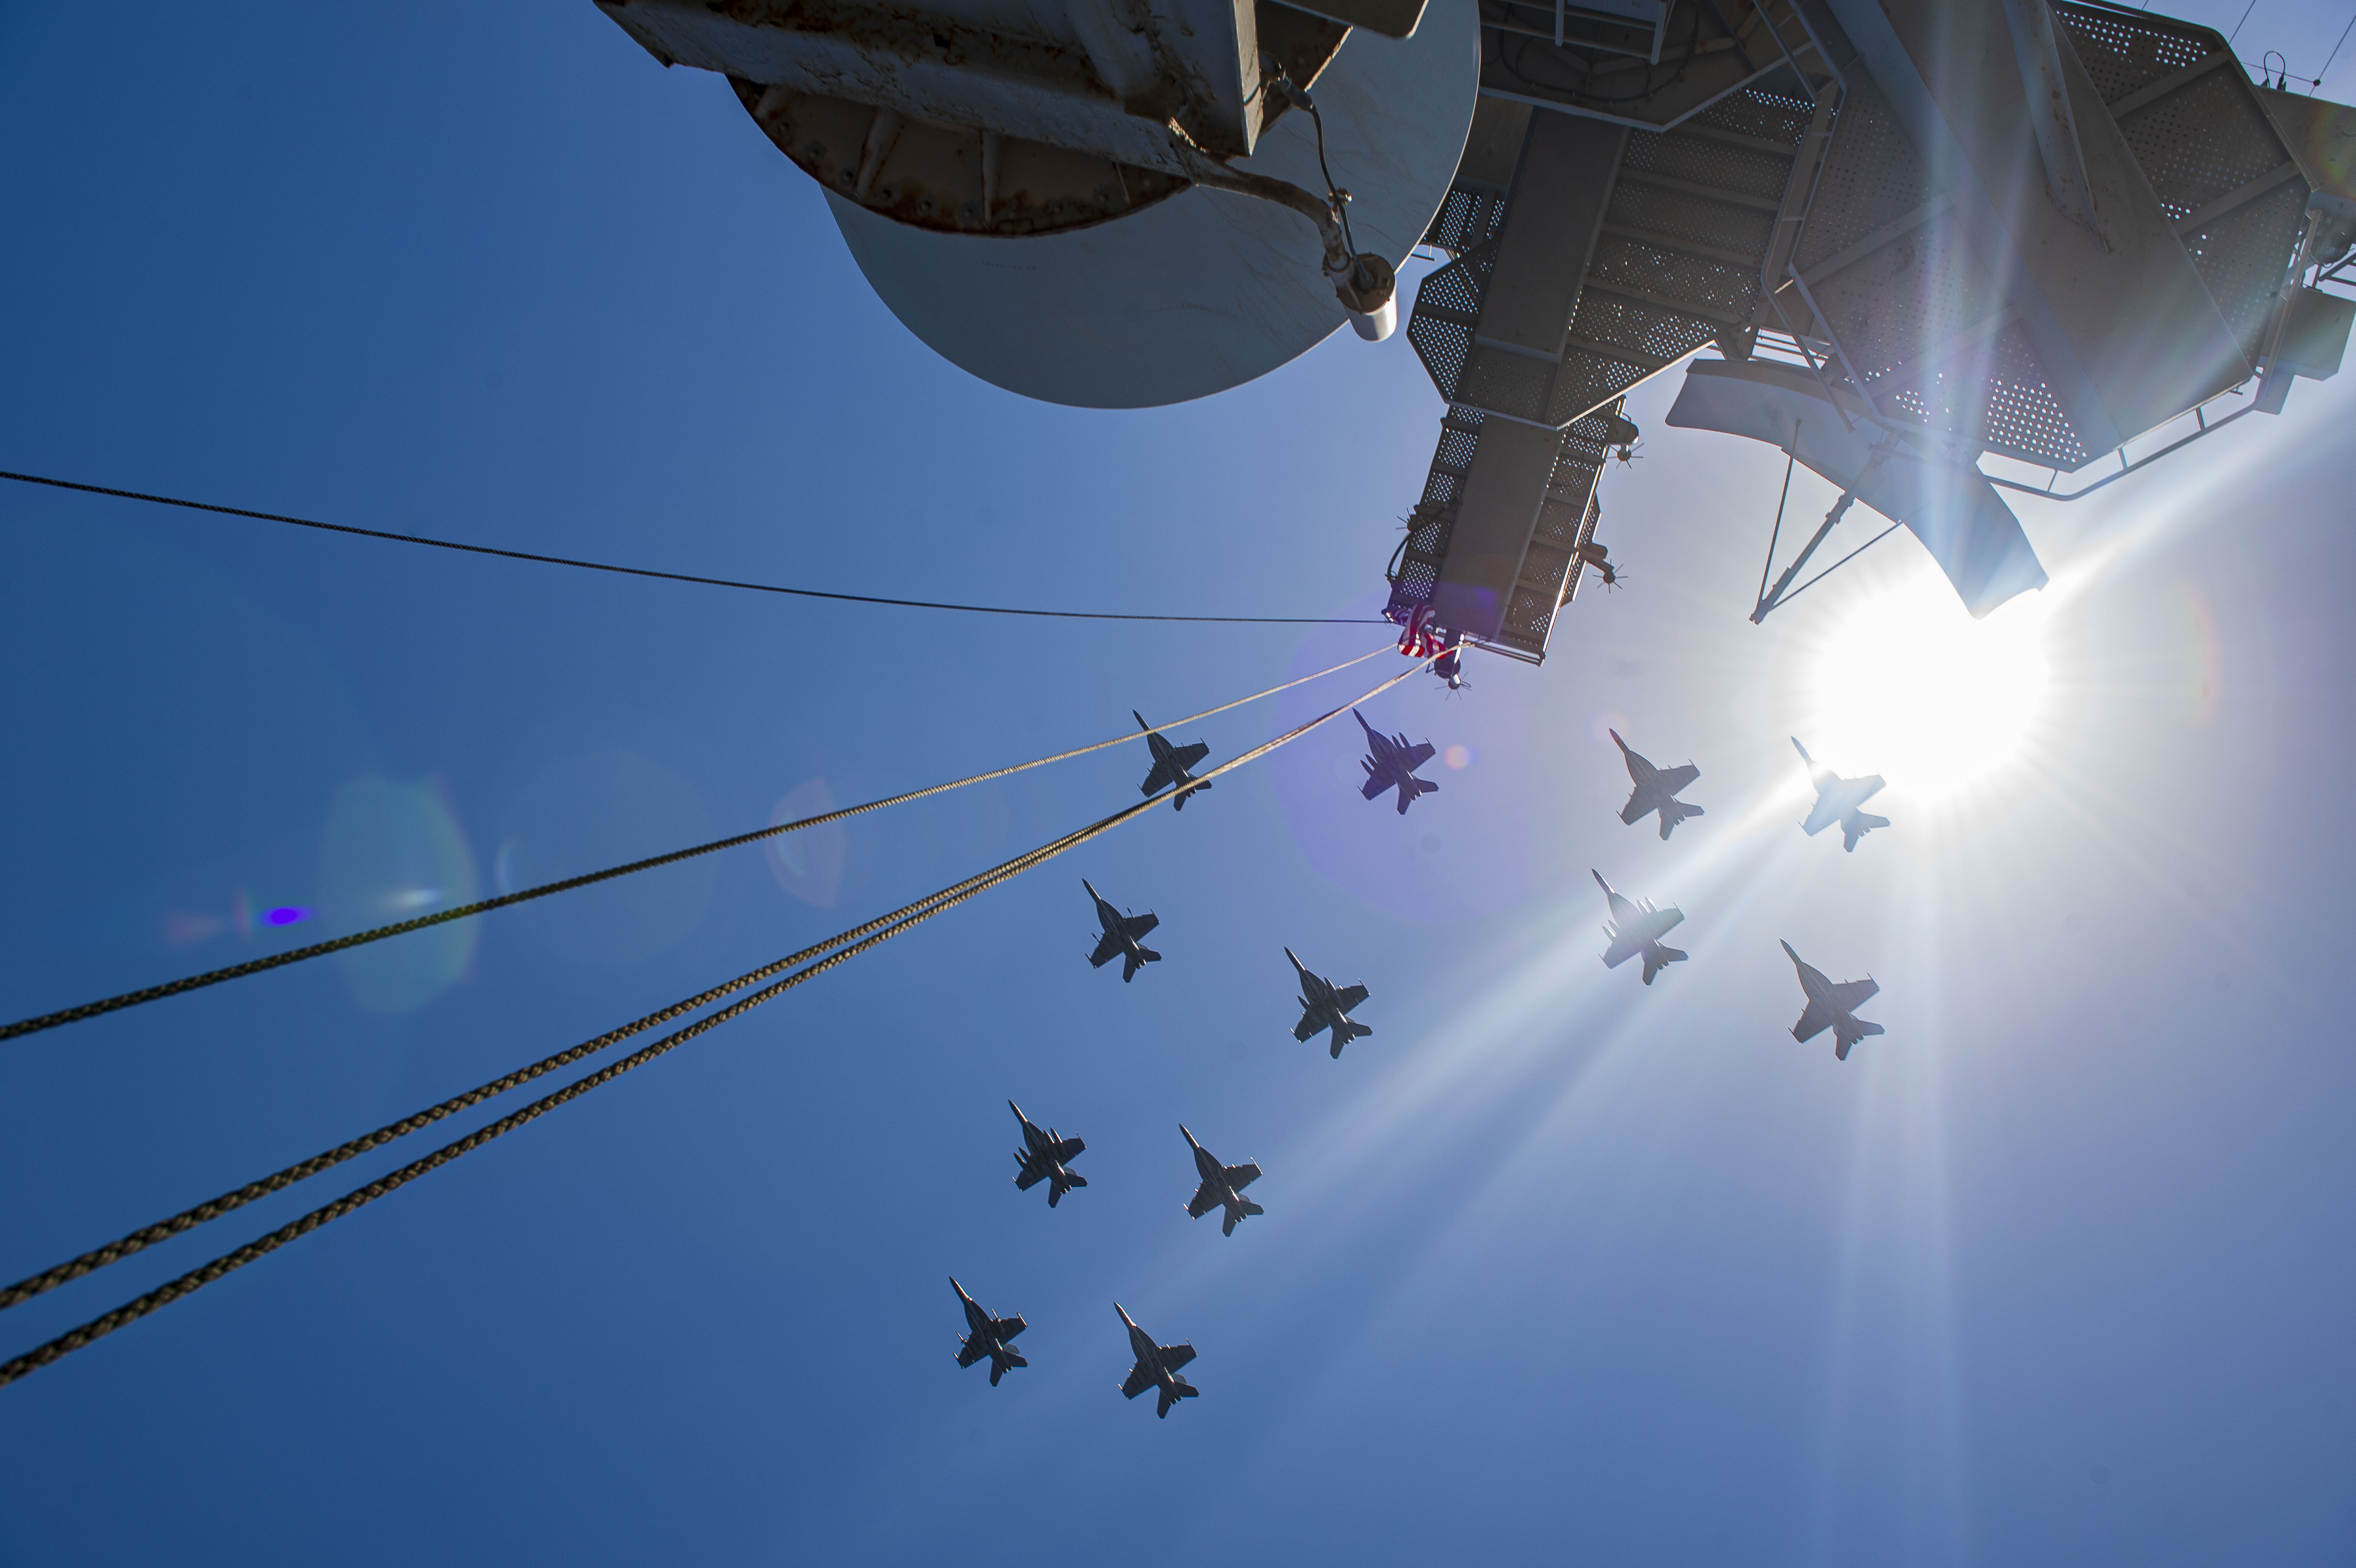 F/A-18E Super Hornet fighter jets attached to the